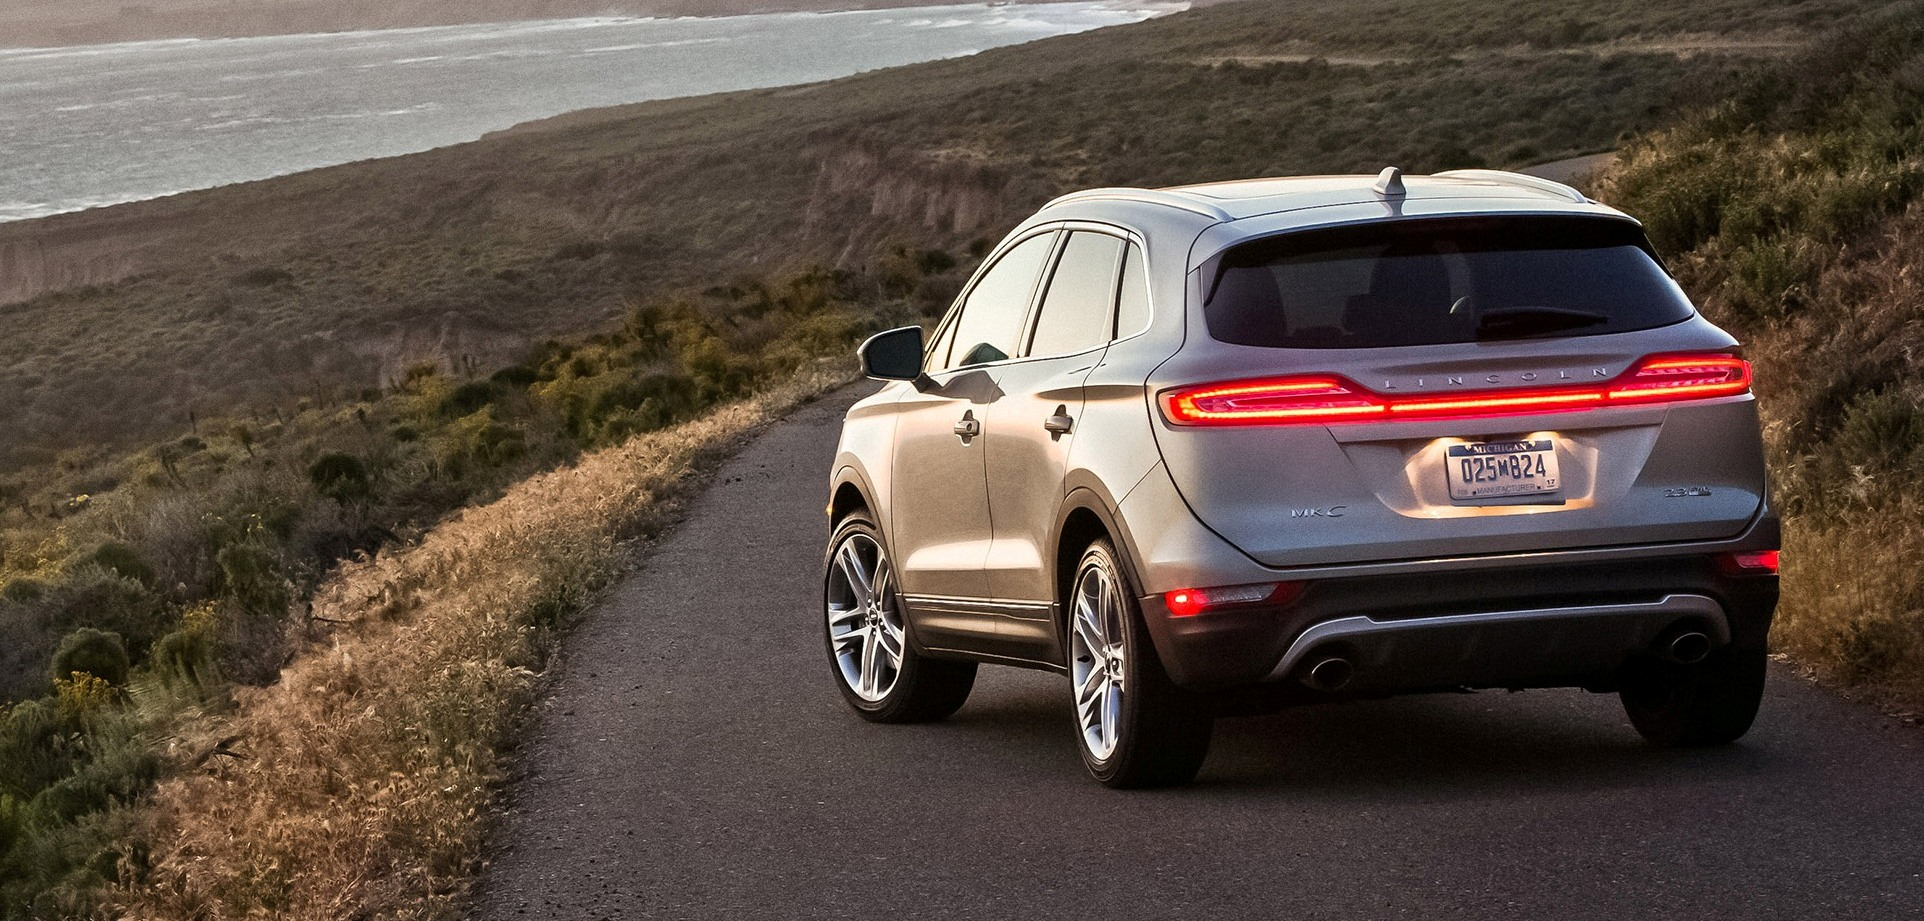 2015 Lincoln MKC Arriving in Showrooms Now – 2.0L EcoBoost from $34k